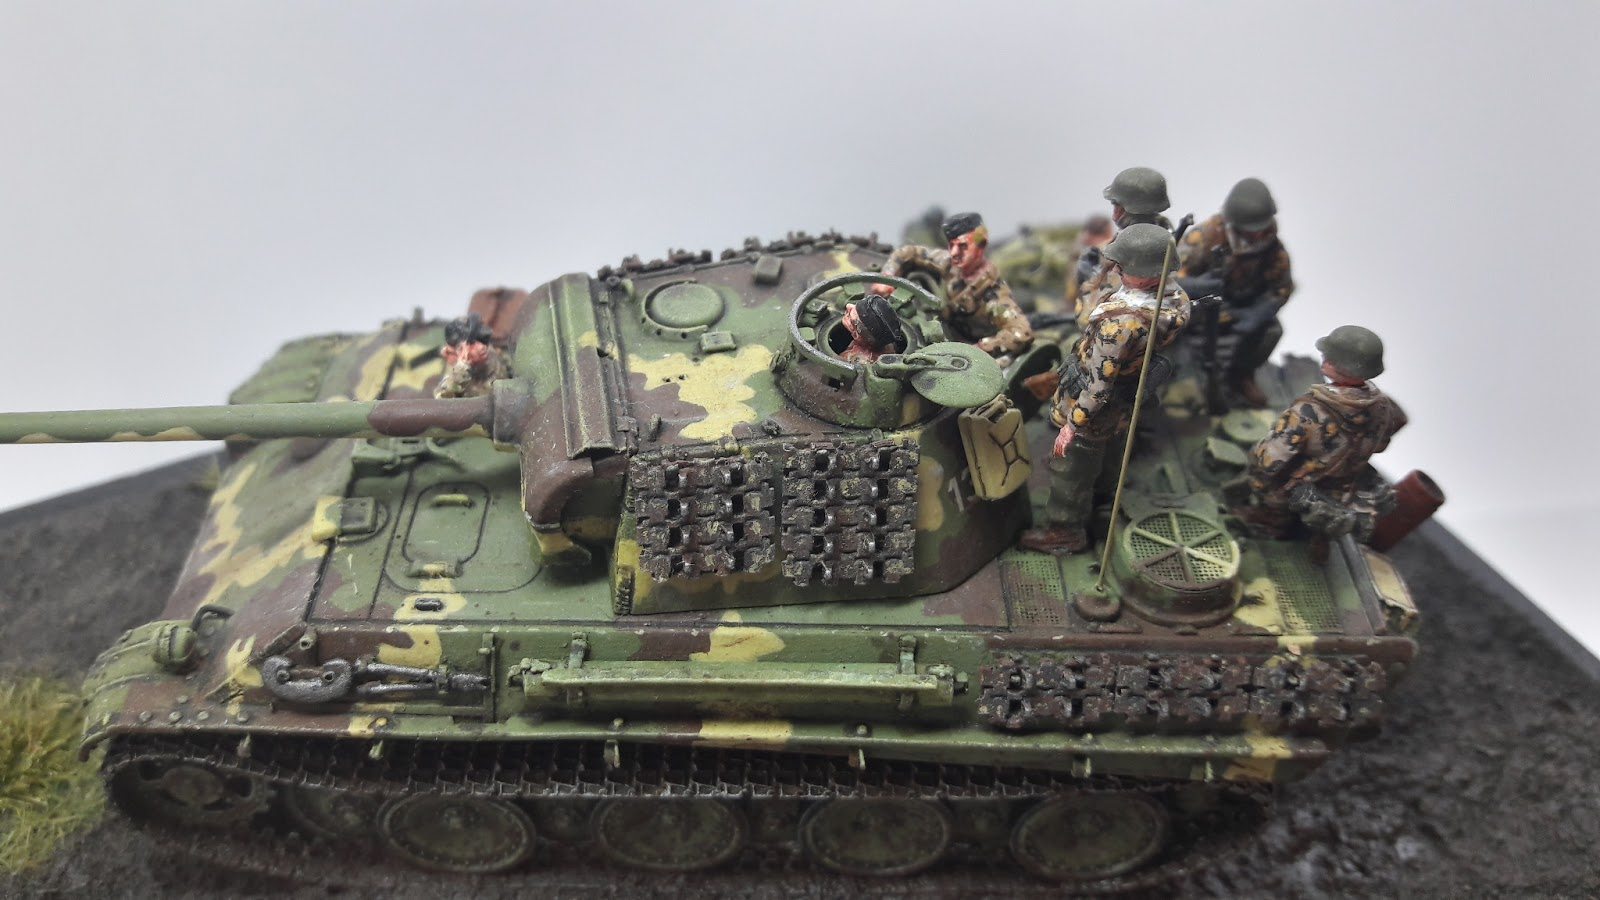 Hongrie 1945 diorama (Panther Ausf.G Late & Zundapp KS 750) - Page 7 20190610_122929_Richtone%2528HDR%2529